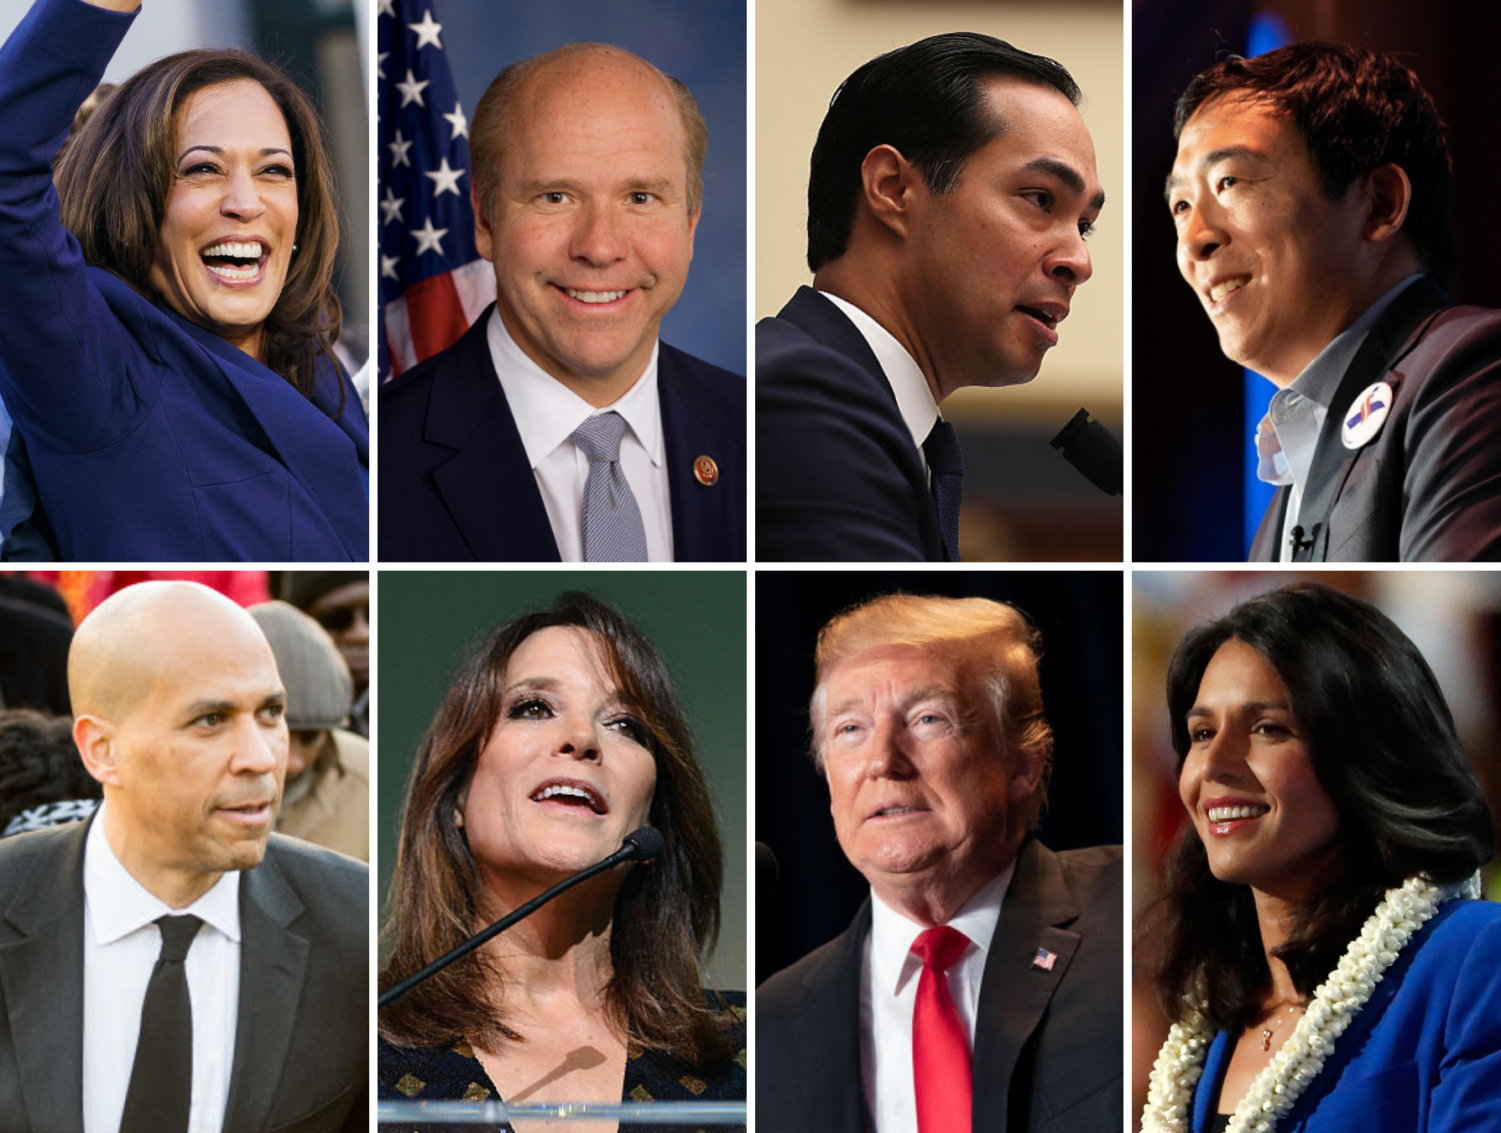 These are just some of the candidates for the 2019-2020 presidential election. From top left to bottom right: Kamala Harris, John Delaney, Julian Castro, Andrew Yang, Cory Booker, Marianne Williamson, Donald Trump, and Tulsi Gabbard.